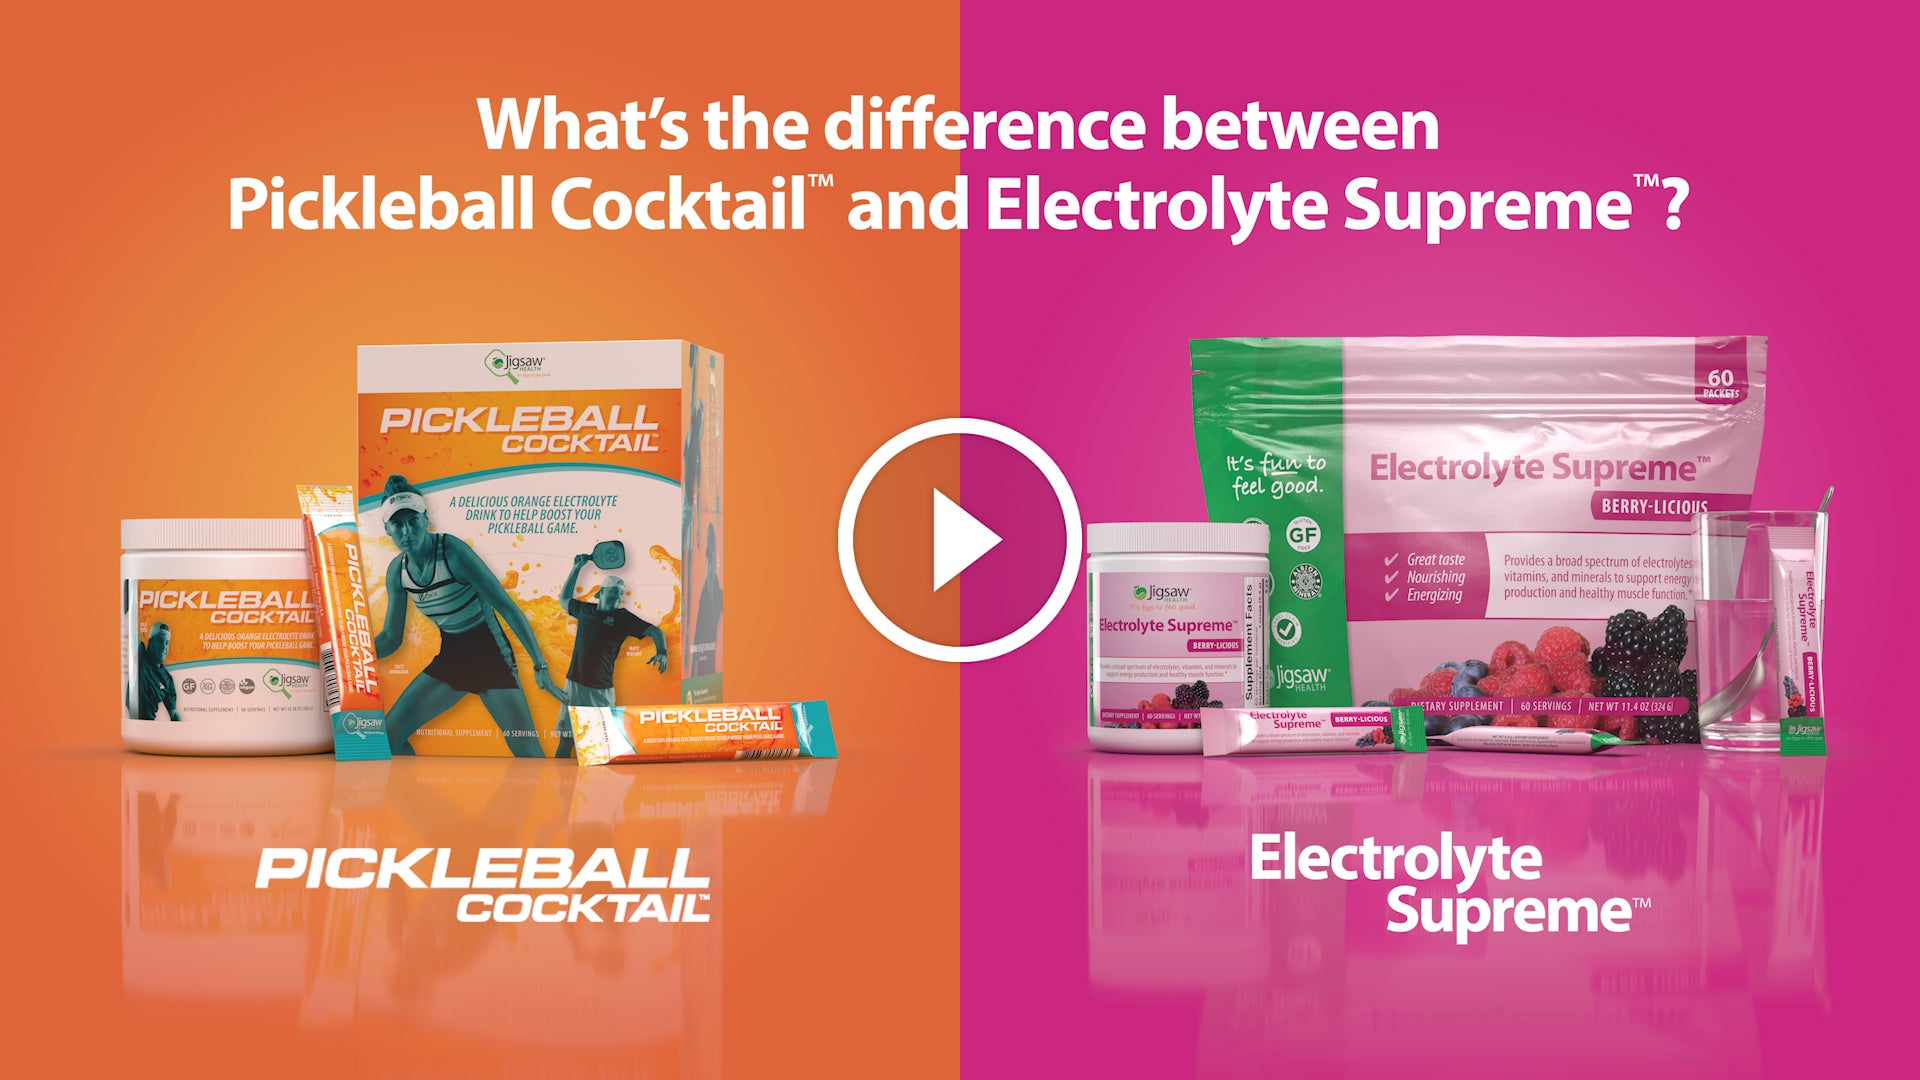 What's the difference between Pickleball Cocktail™ and Electrolyte Supreme™?